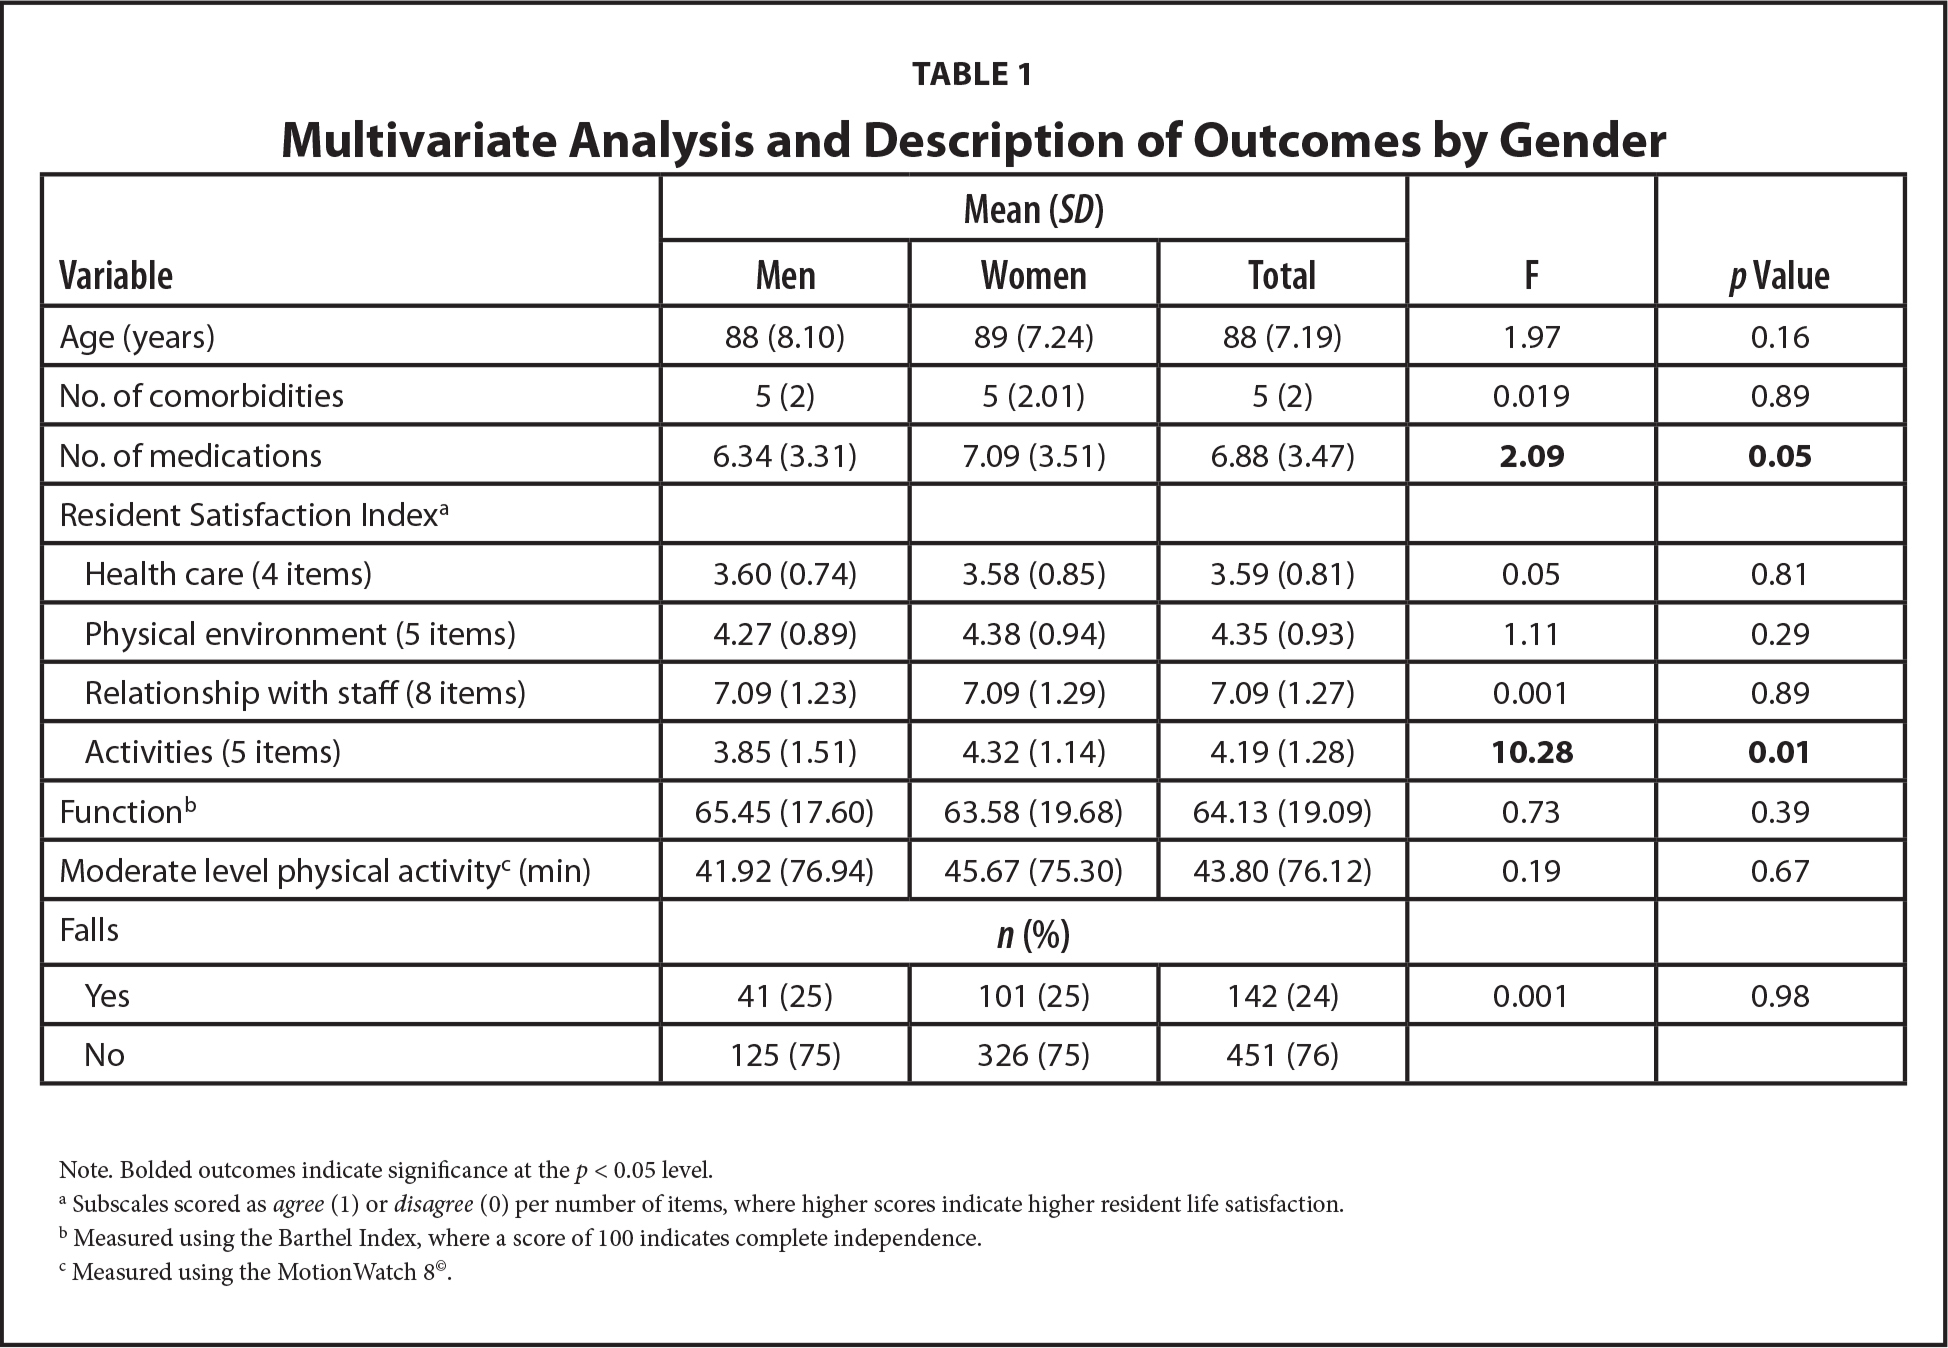 Multivariate Analysis and Description of Outcomes by Gender